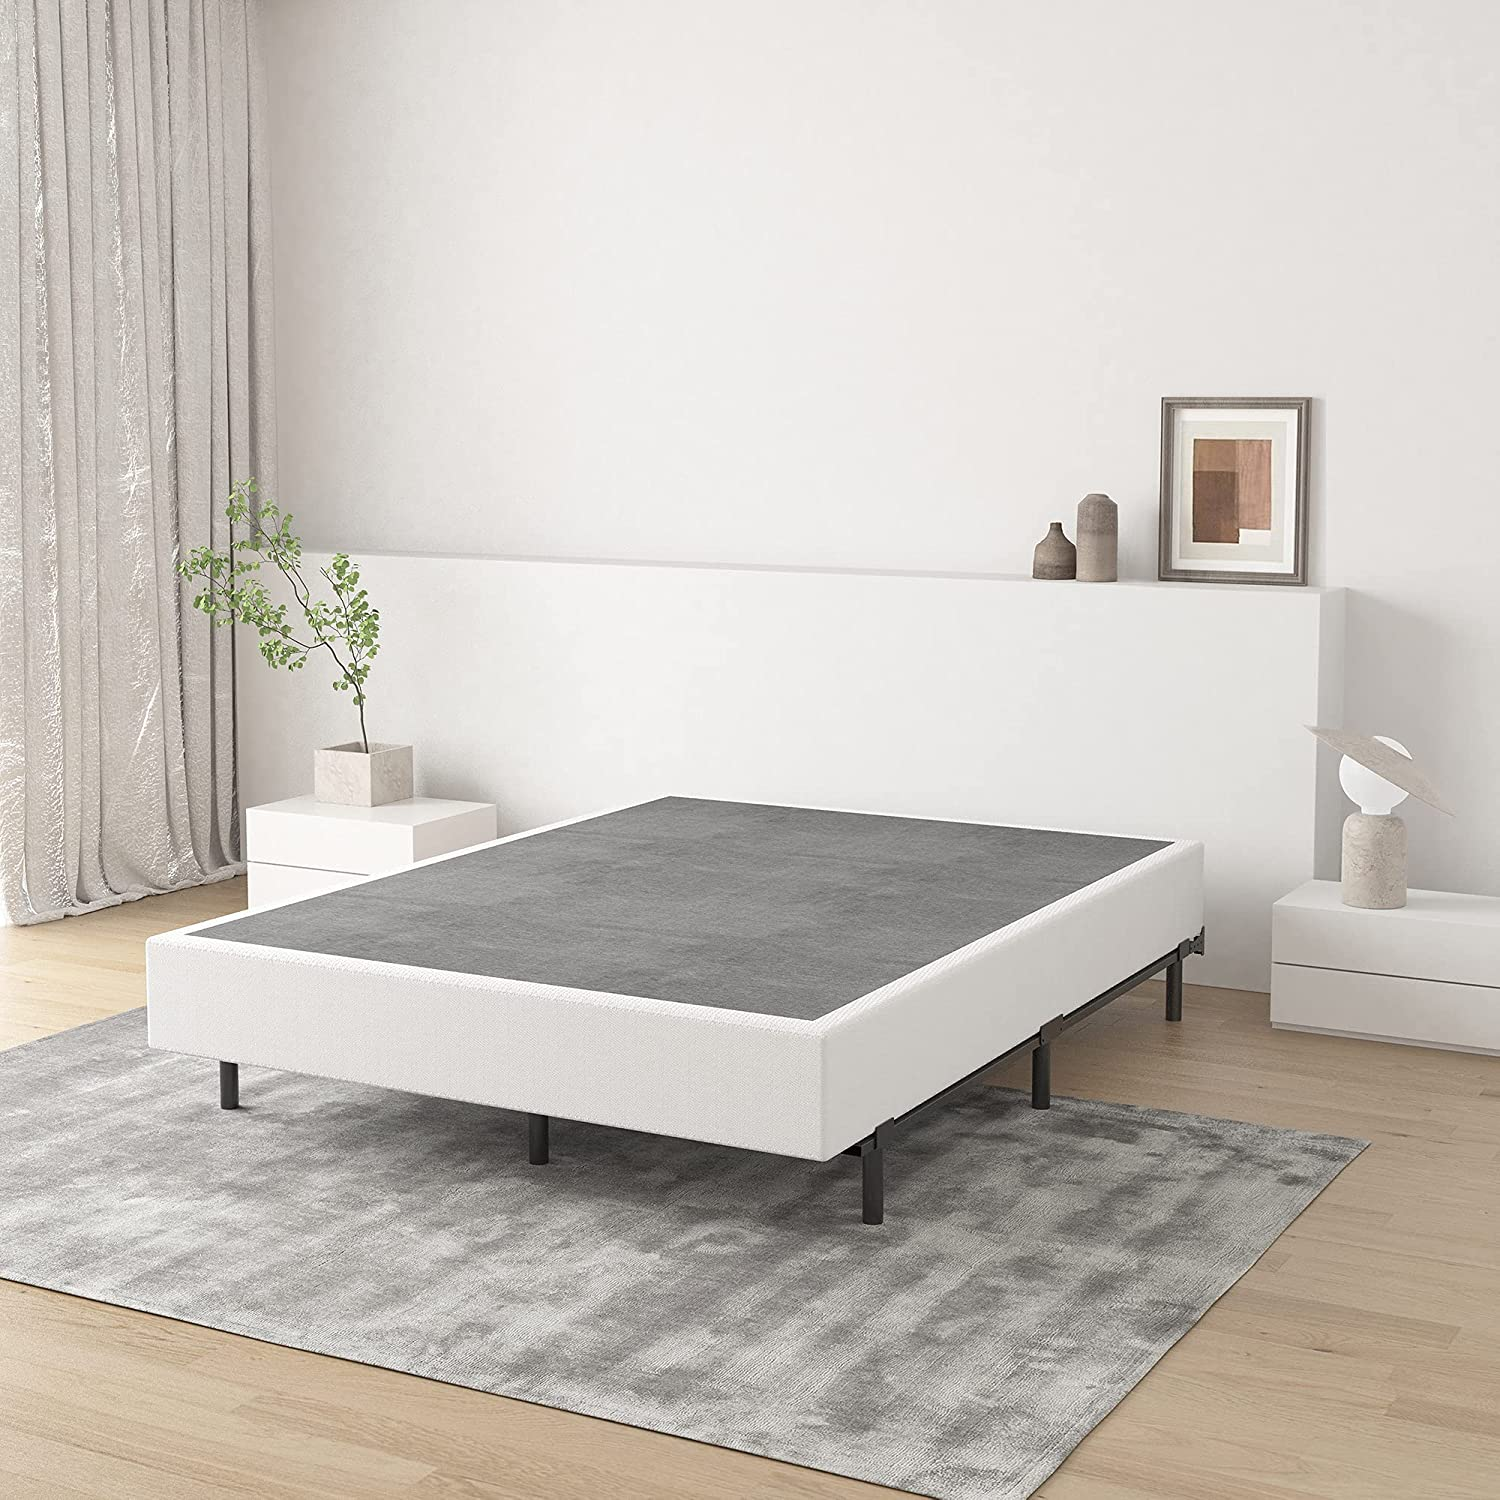 ZIYOO Cal King Box Spring 9 Courier shipping free shipping High Assembly Easy Matt Profile Sale Special Price Inch